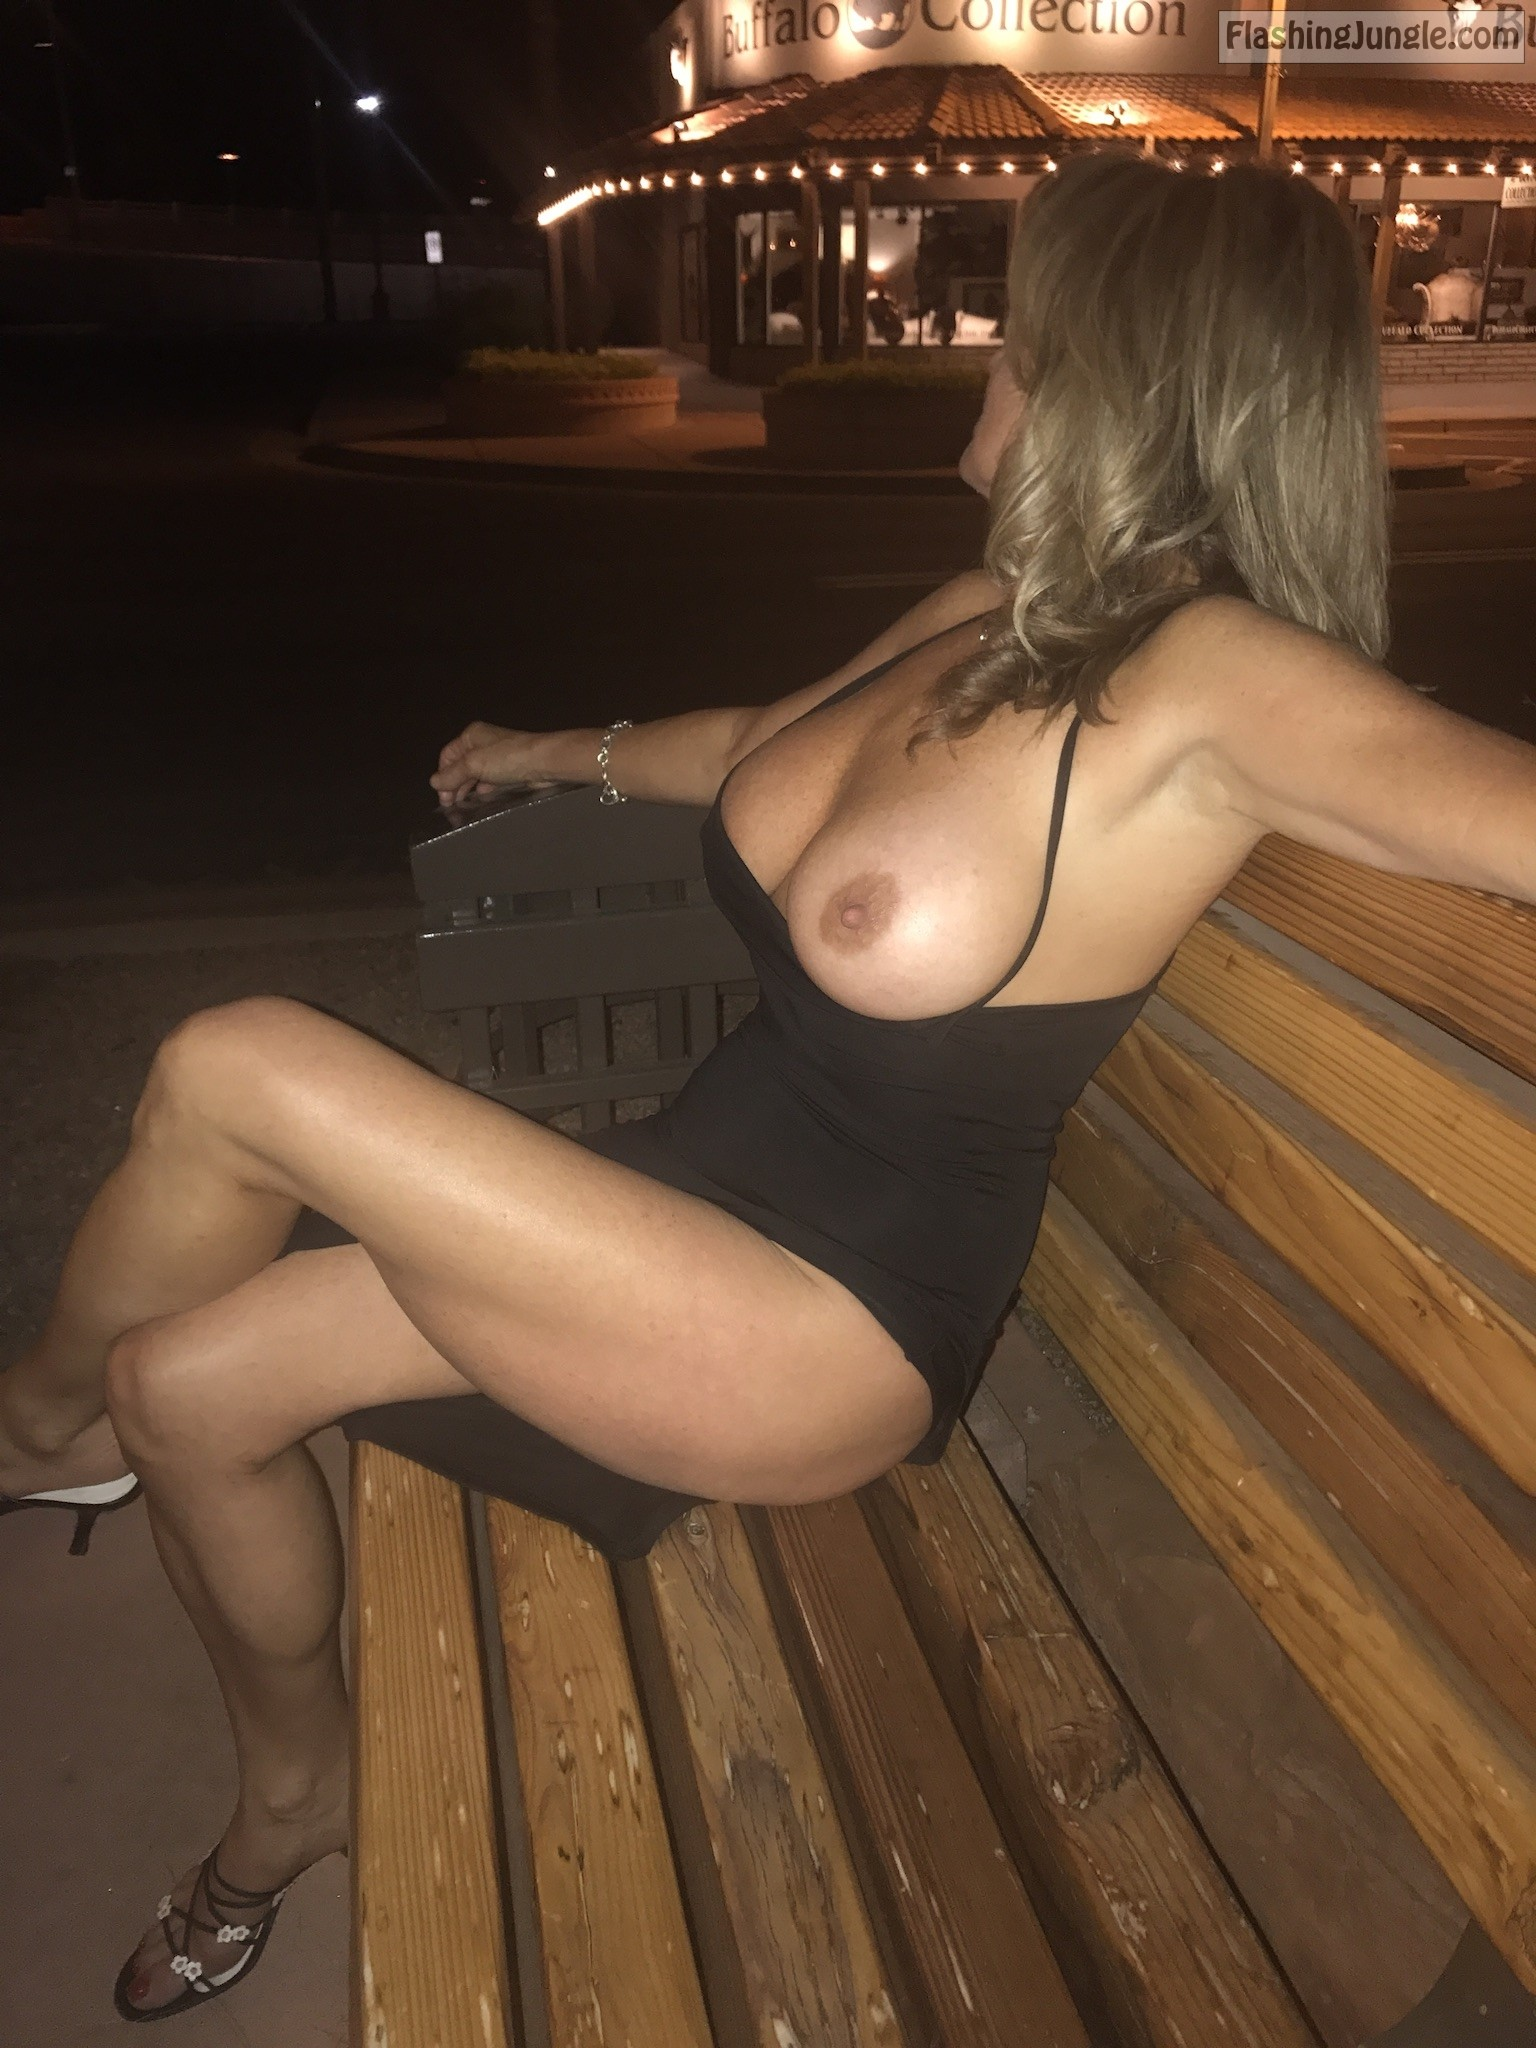 Johns Sexy Wife Flashing Boobs Outdoors Boobs Flash Pics -7174